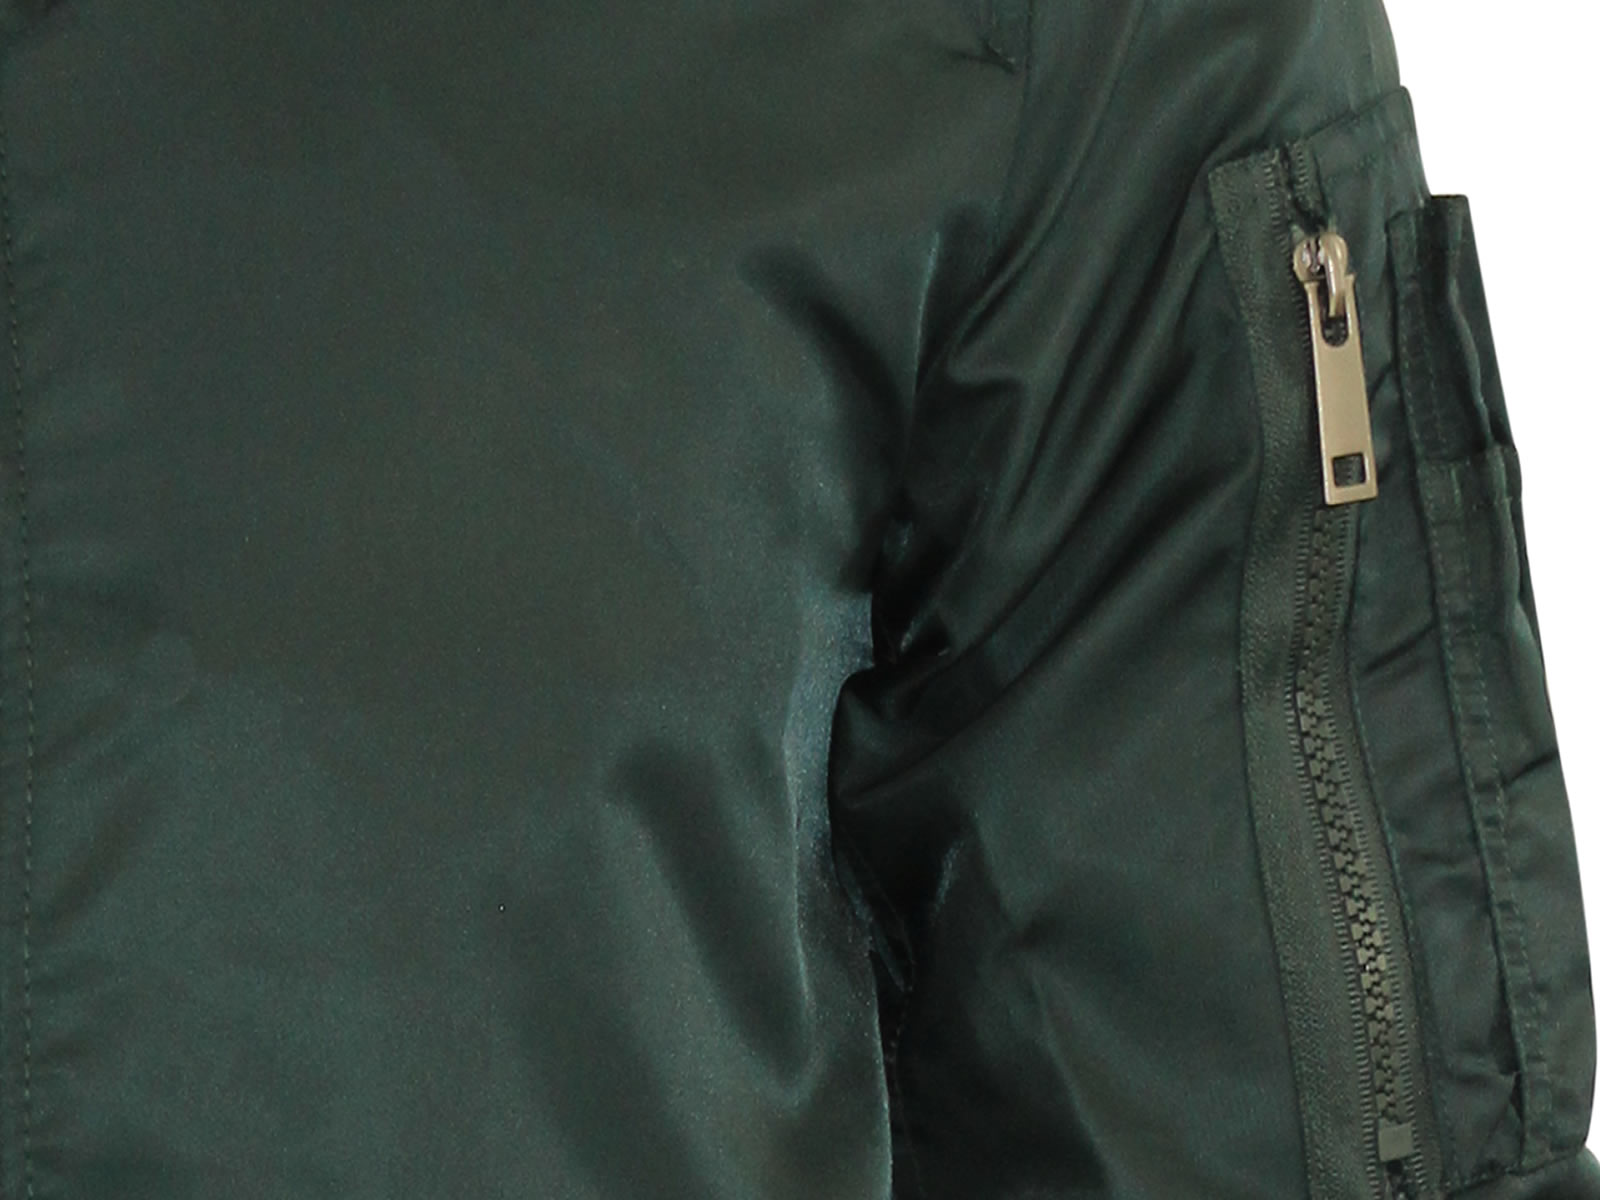 67a9aec85 Details about Mens Bomber Jacket Brave Soul Oslo Padded MA1 Flight Coat